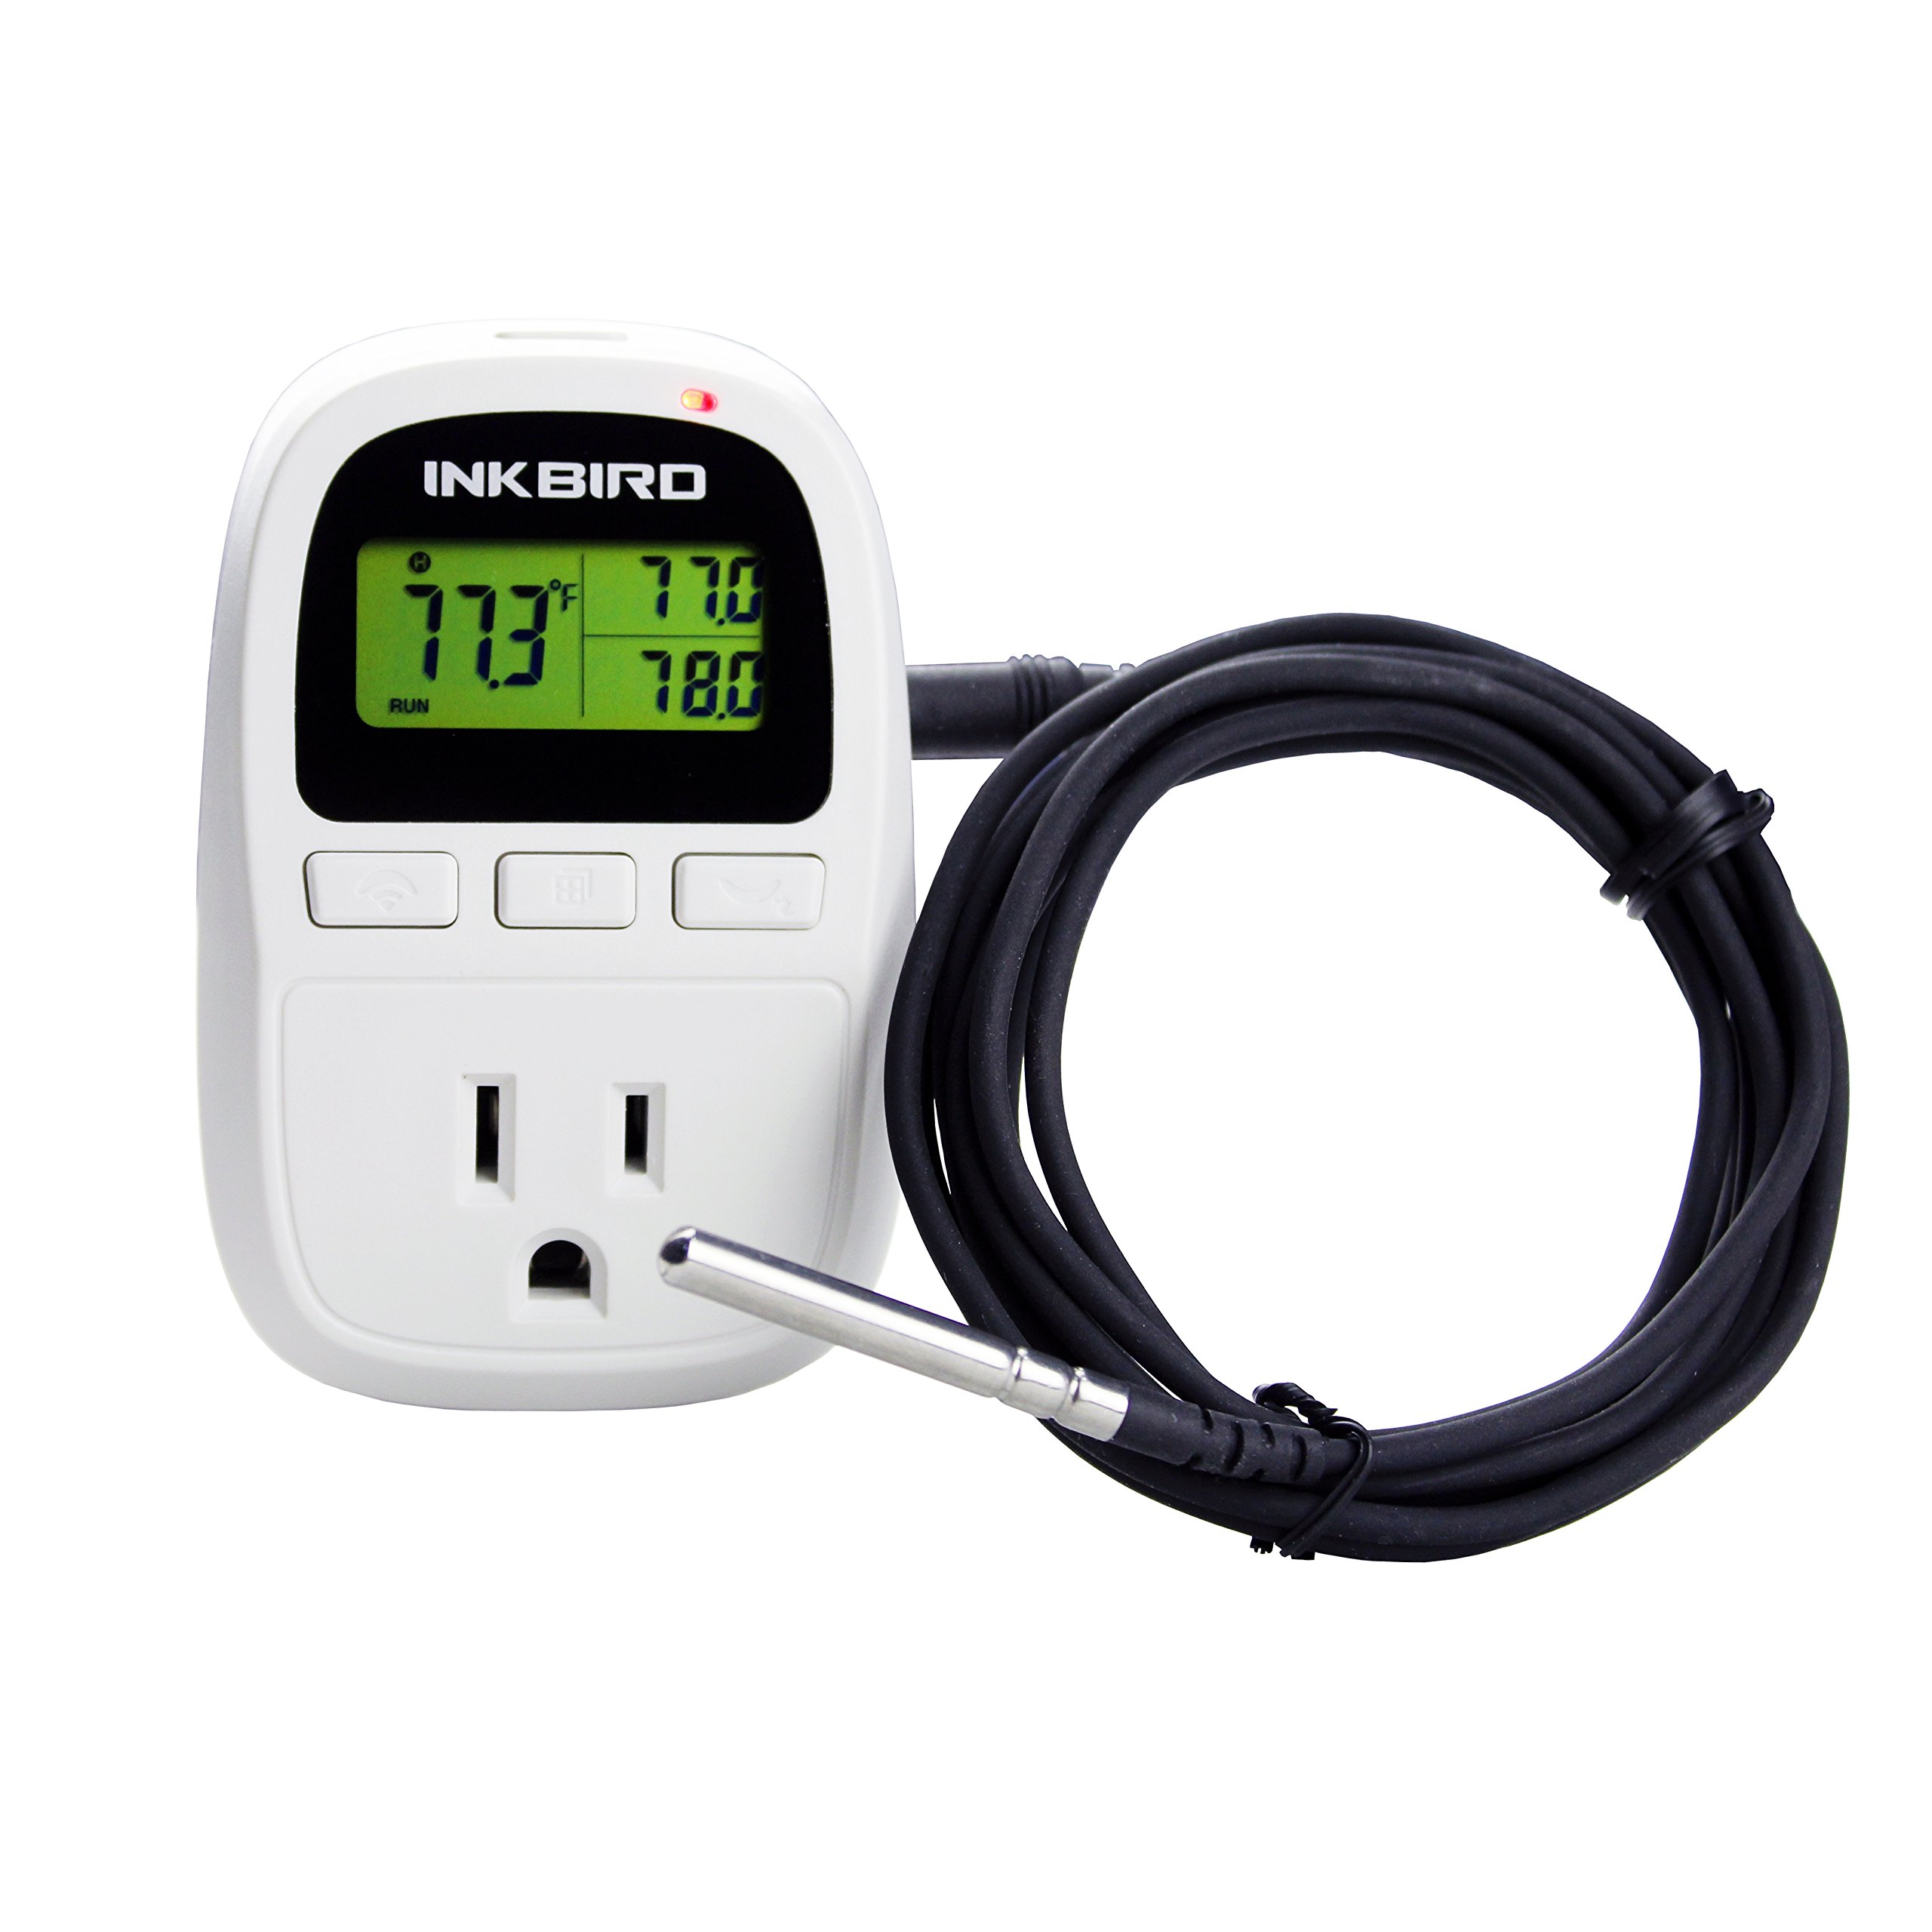 Inkbird Digital Heating or Cooling Temperature Controller, Humidity Thermostat and Timer c909 1500W (with Temperature Sensor)